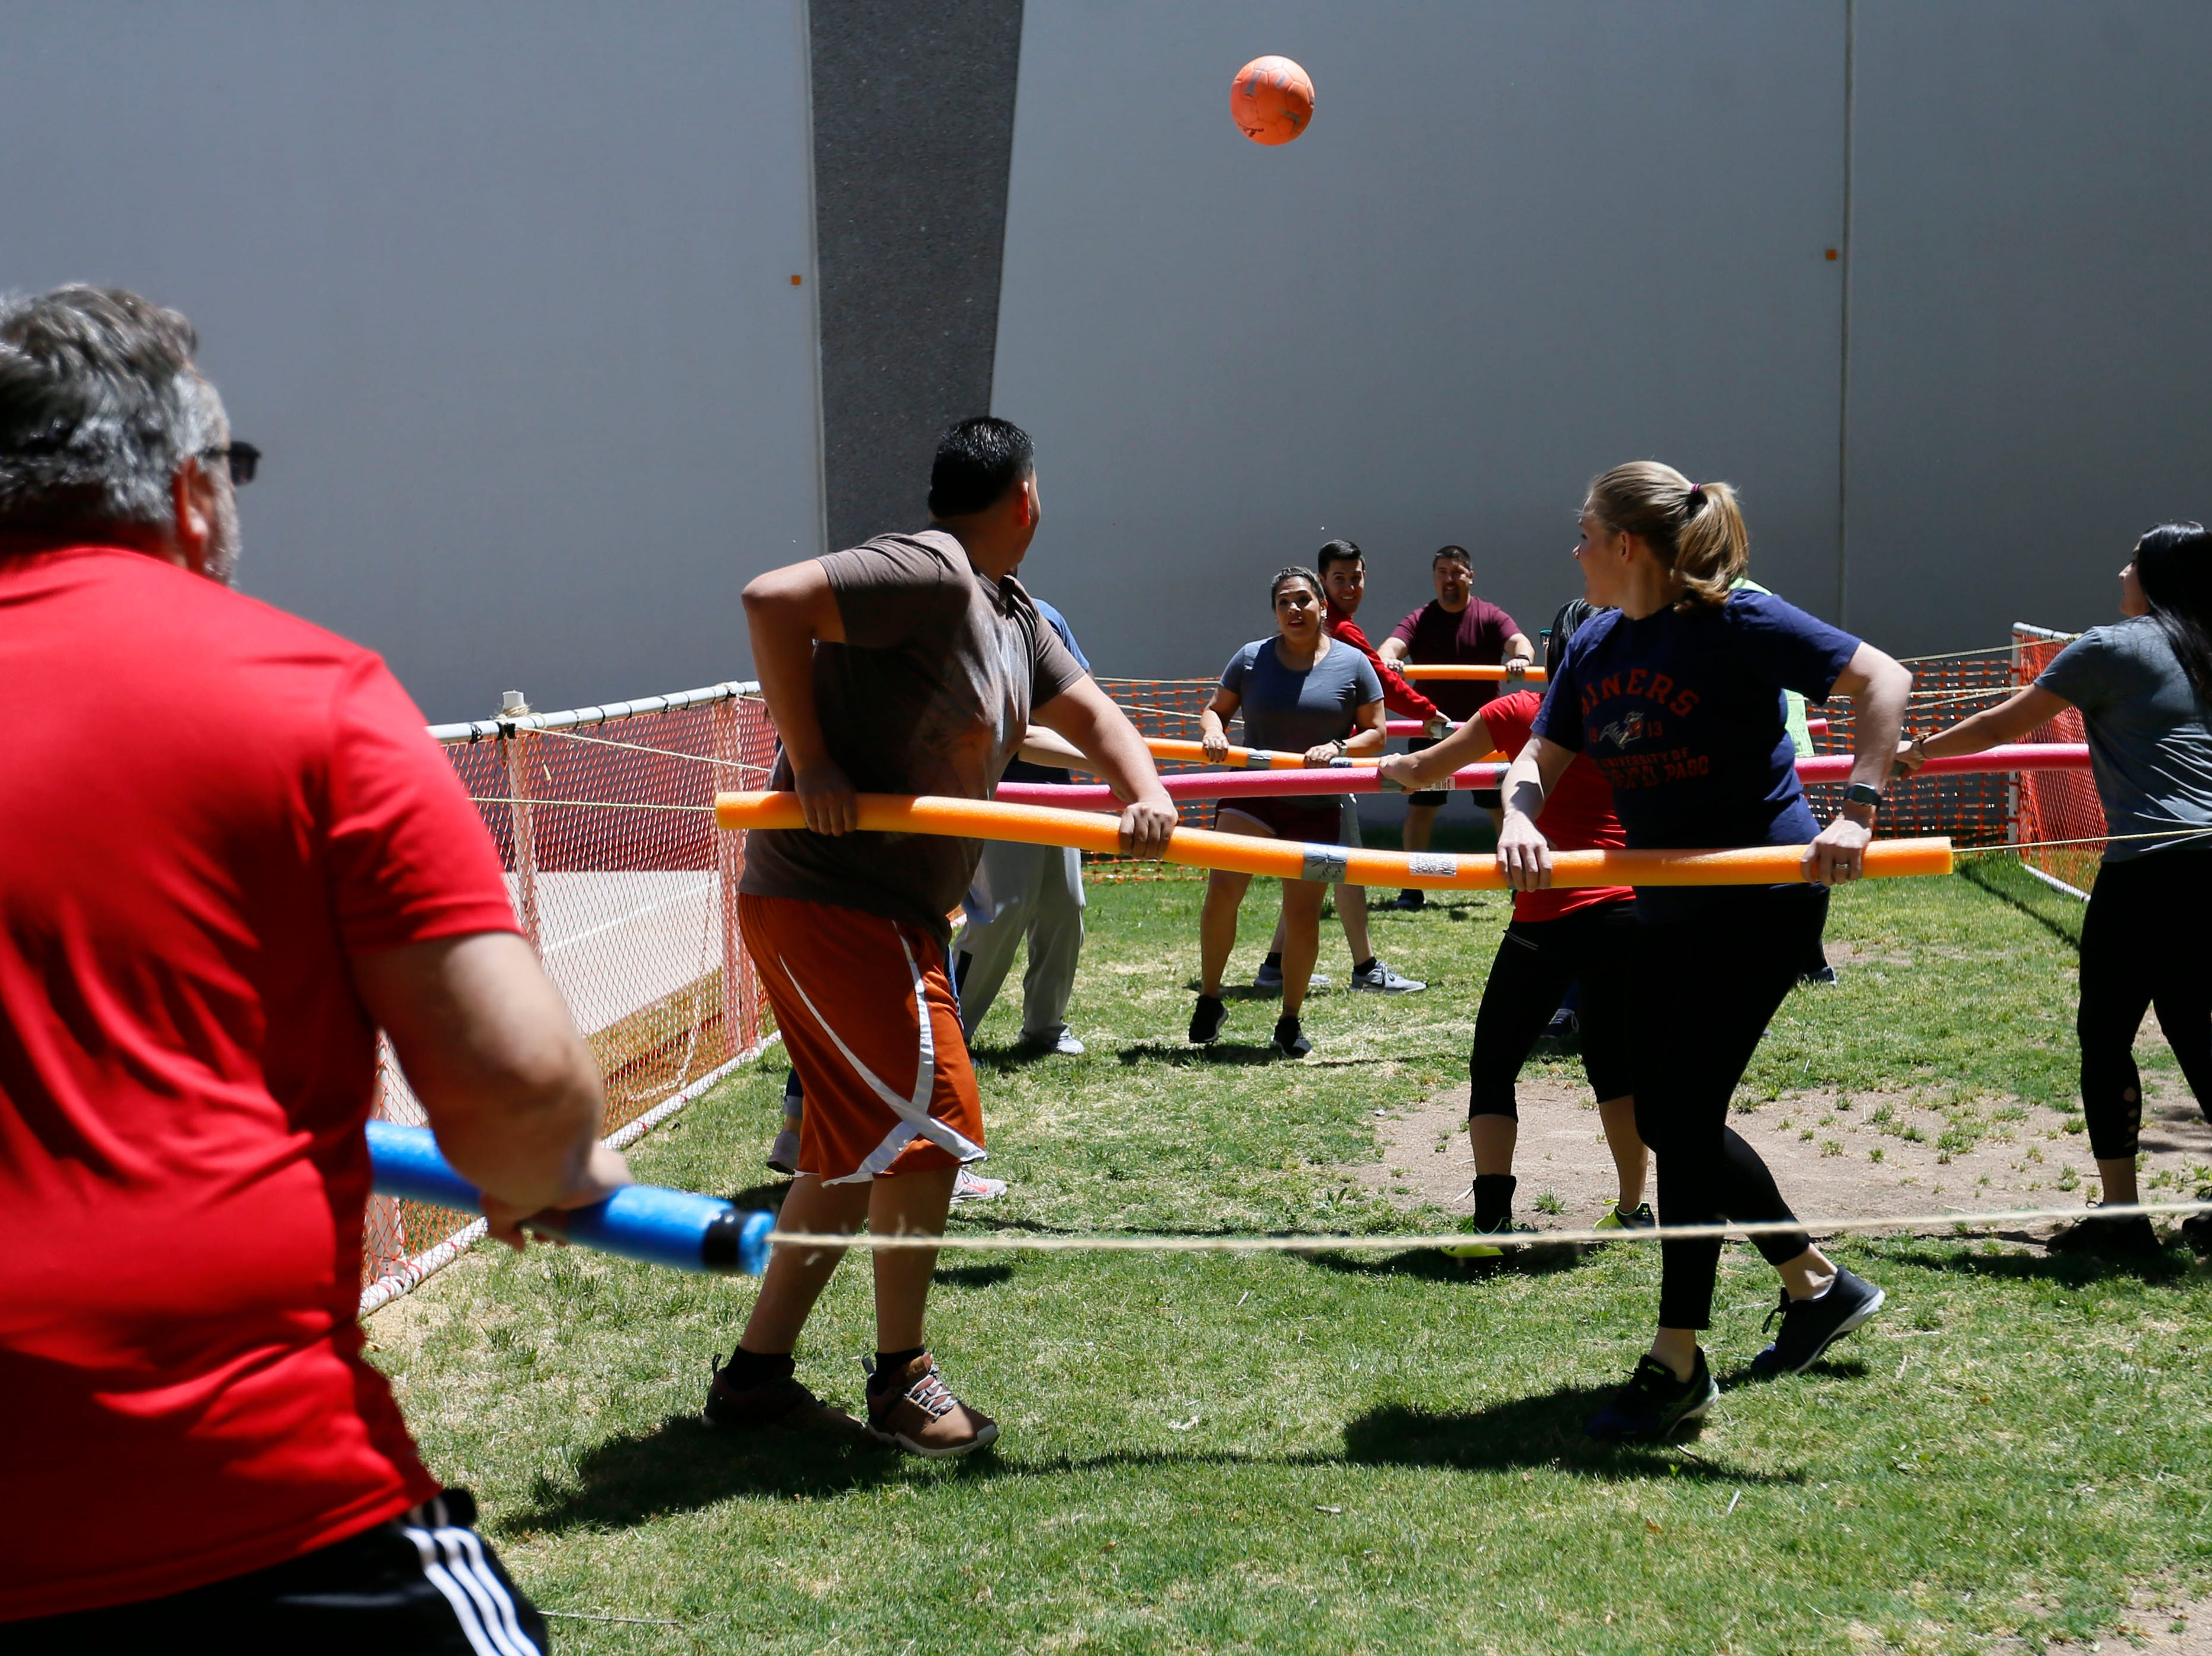 Helen of Troy employees participate in a human foosball tournament Monday, May 13, at Helen of Troy. The tournament benefited Junior Achievement of El Paso. Participating associates paid a $10 participation fee per player. Proceeds go towards Junior Achievement's Bowl-A-Thon.